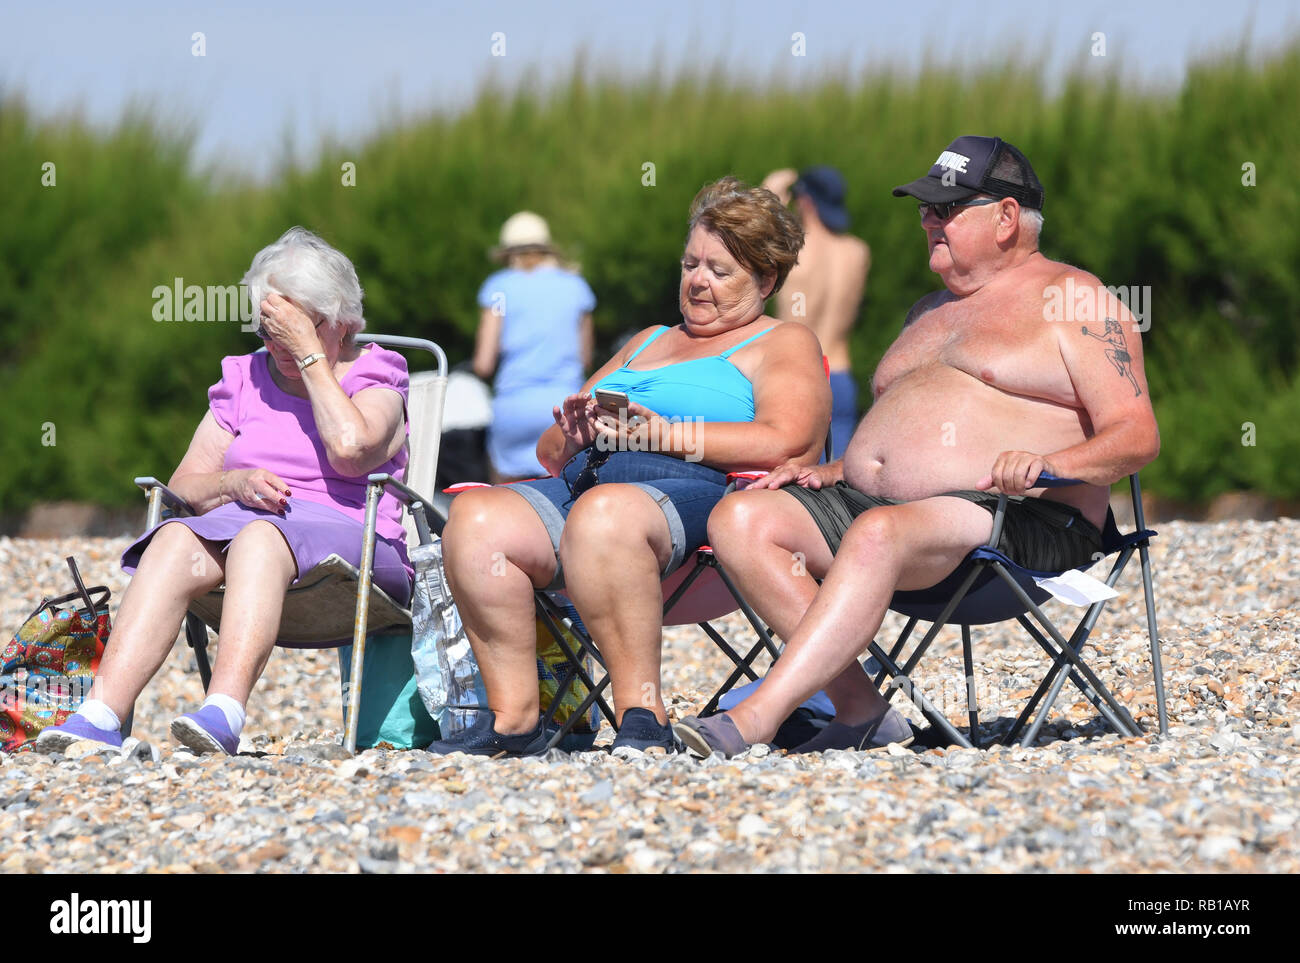 Group of people sitting in the sun on the beach on a hot day during the Summer 2018 heatwave in the UK. - Stock Image